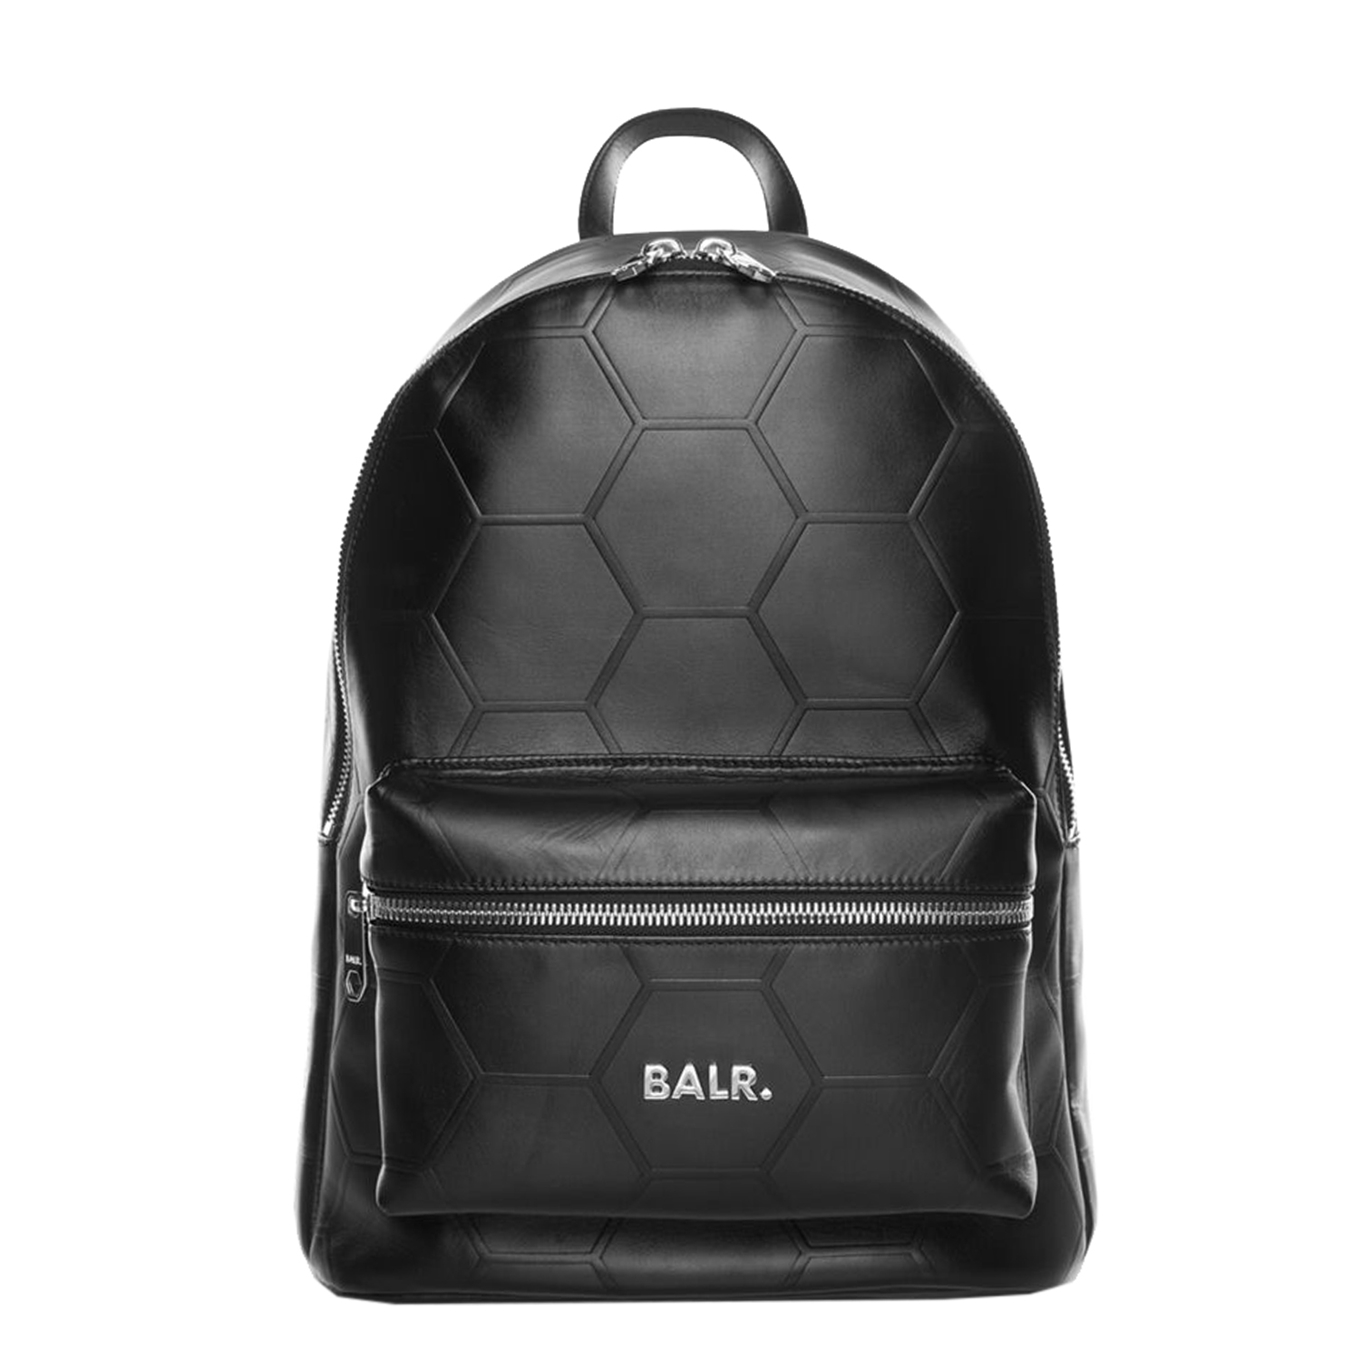 Balr. Hexagon AOP Embossed Leather Backpack black <br/></noscript><img class=